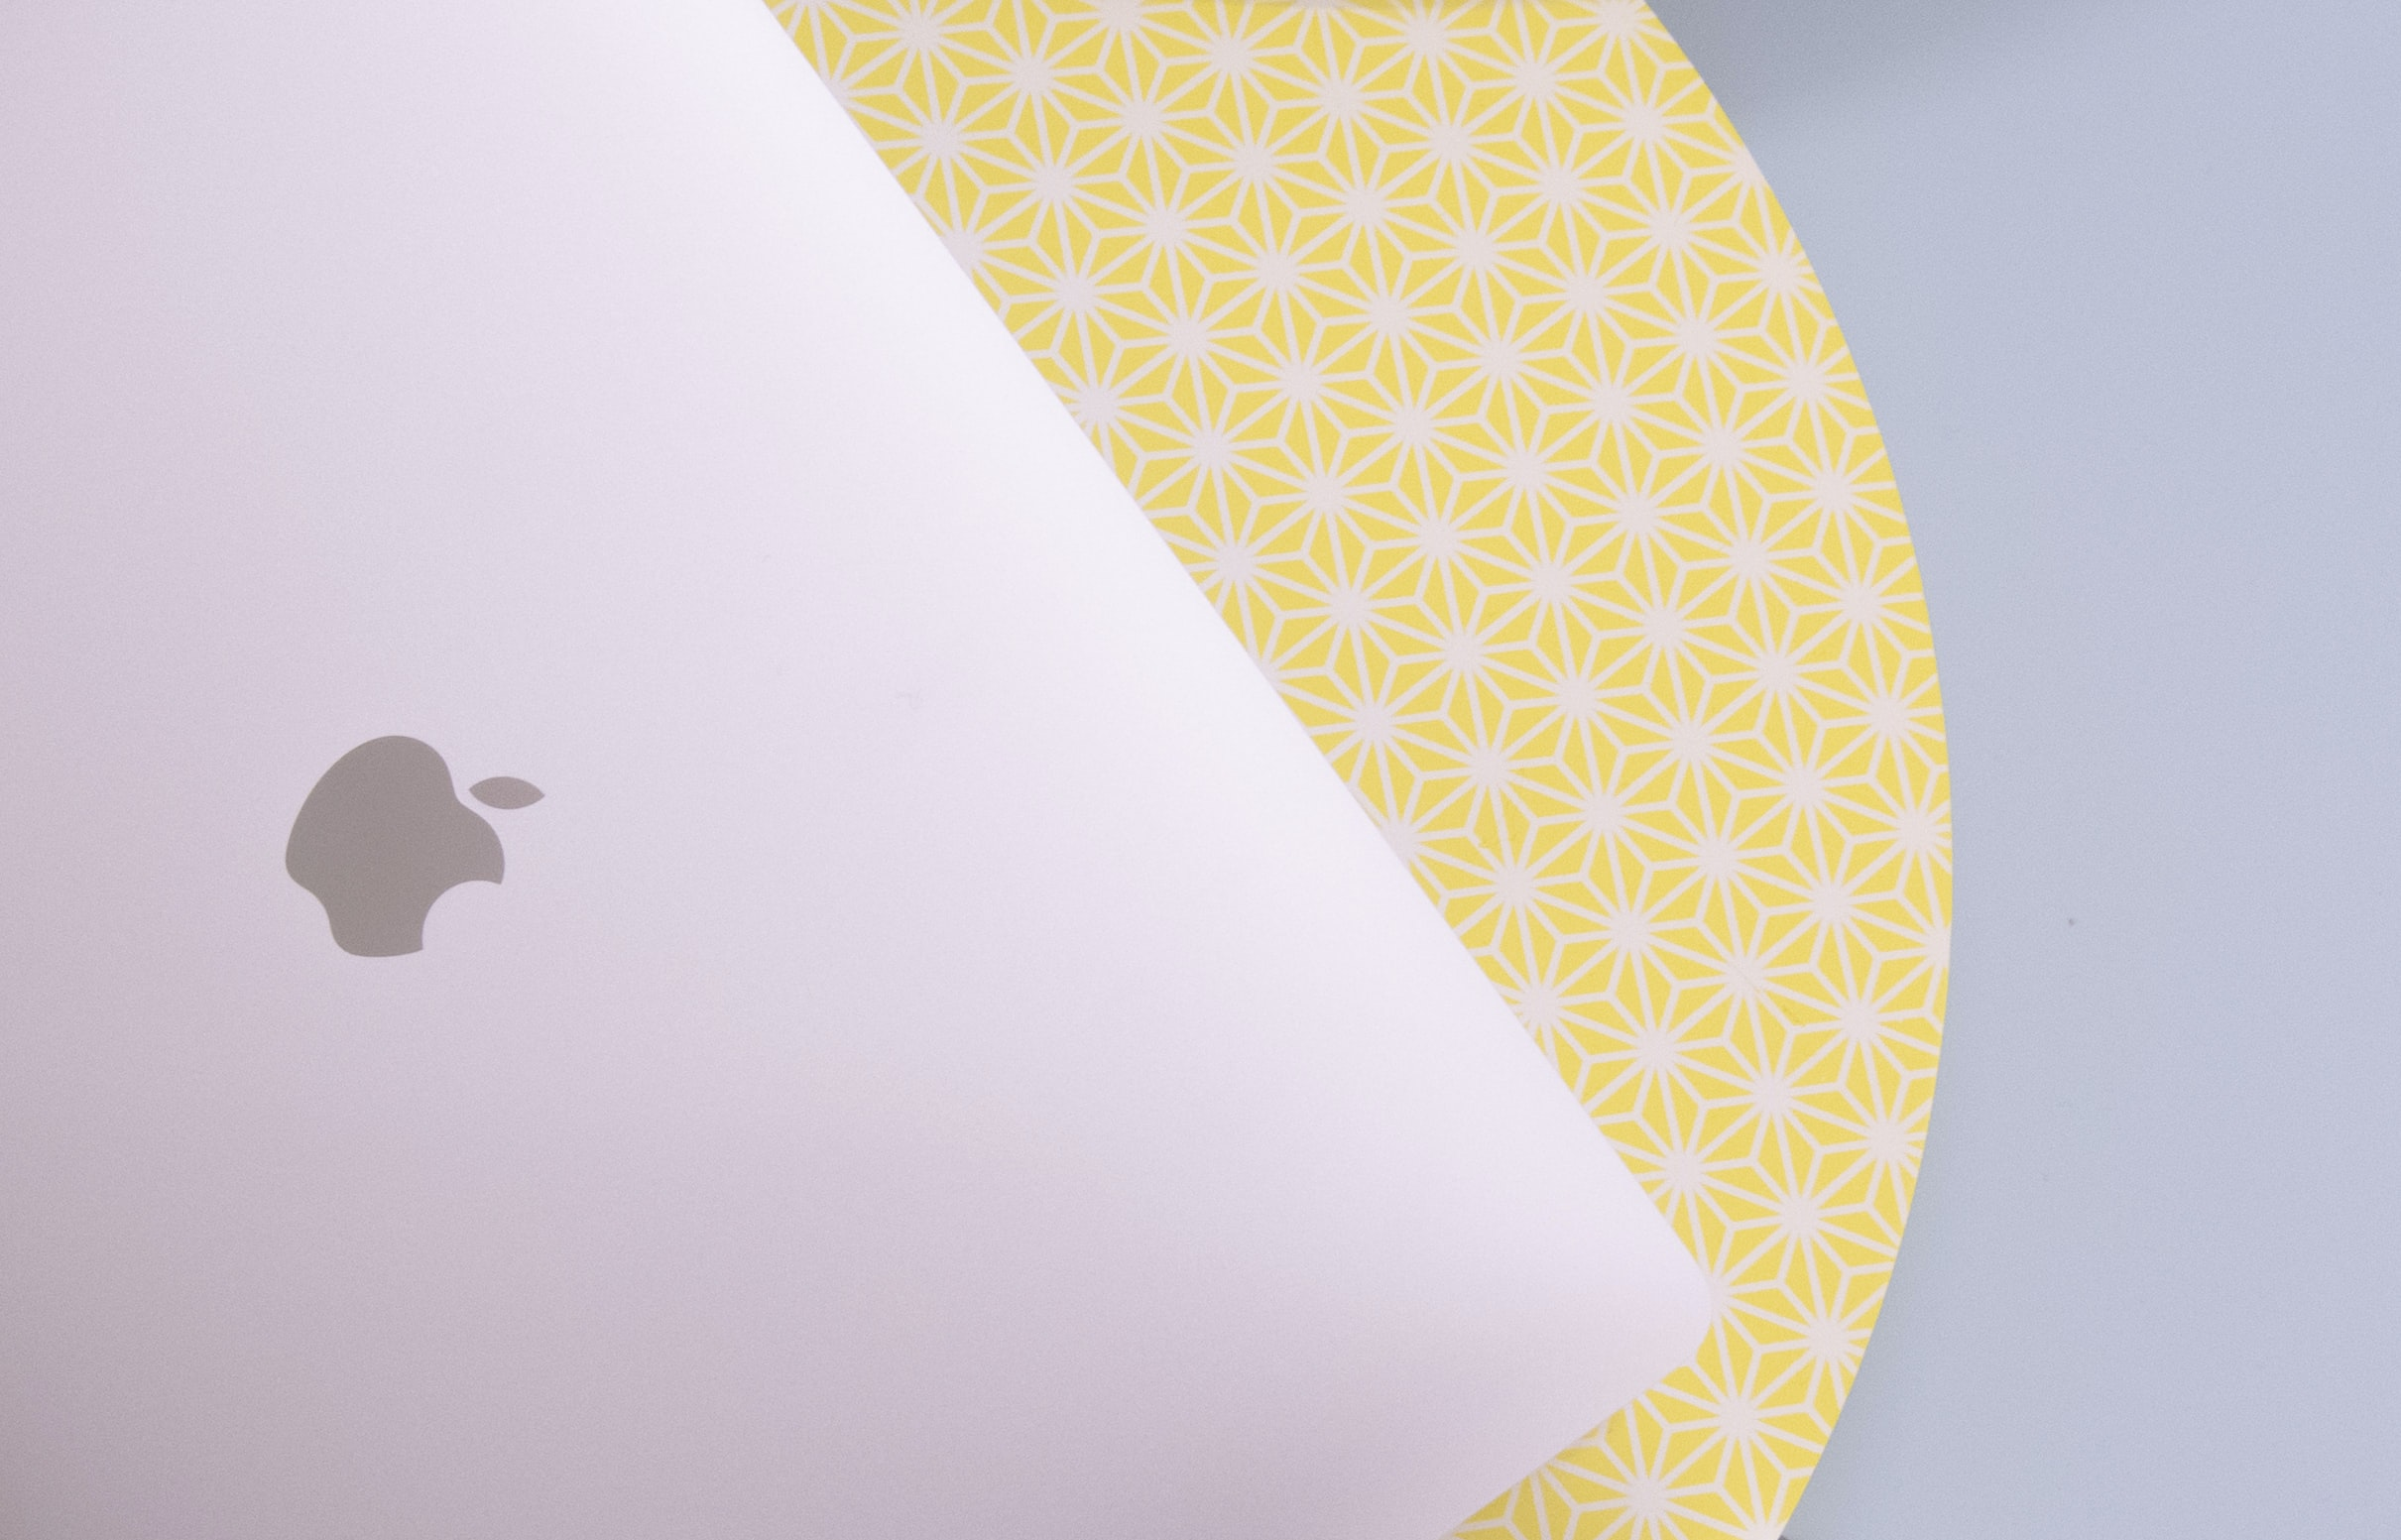 A MacBook laptop on a yellow patterned table in London